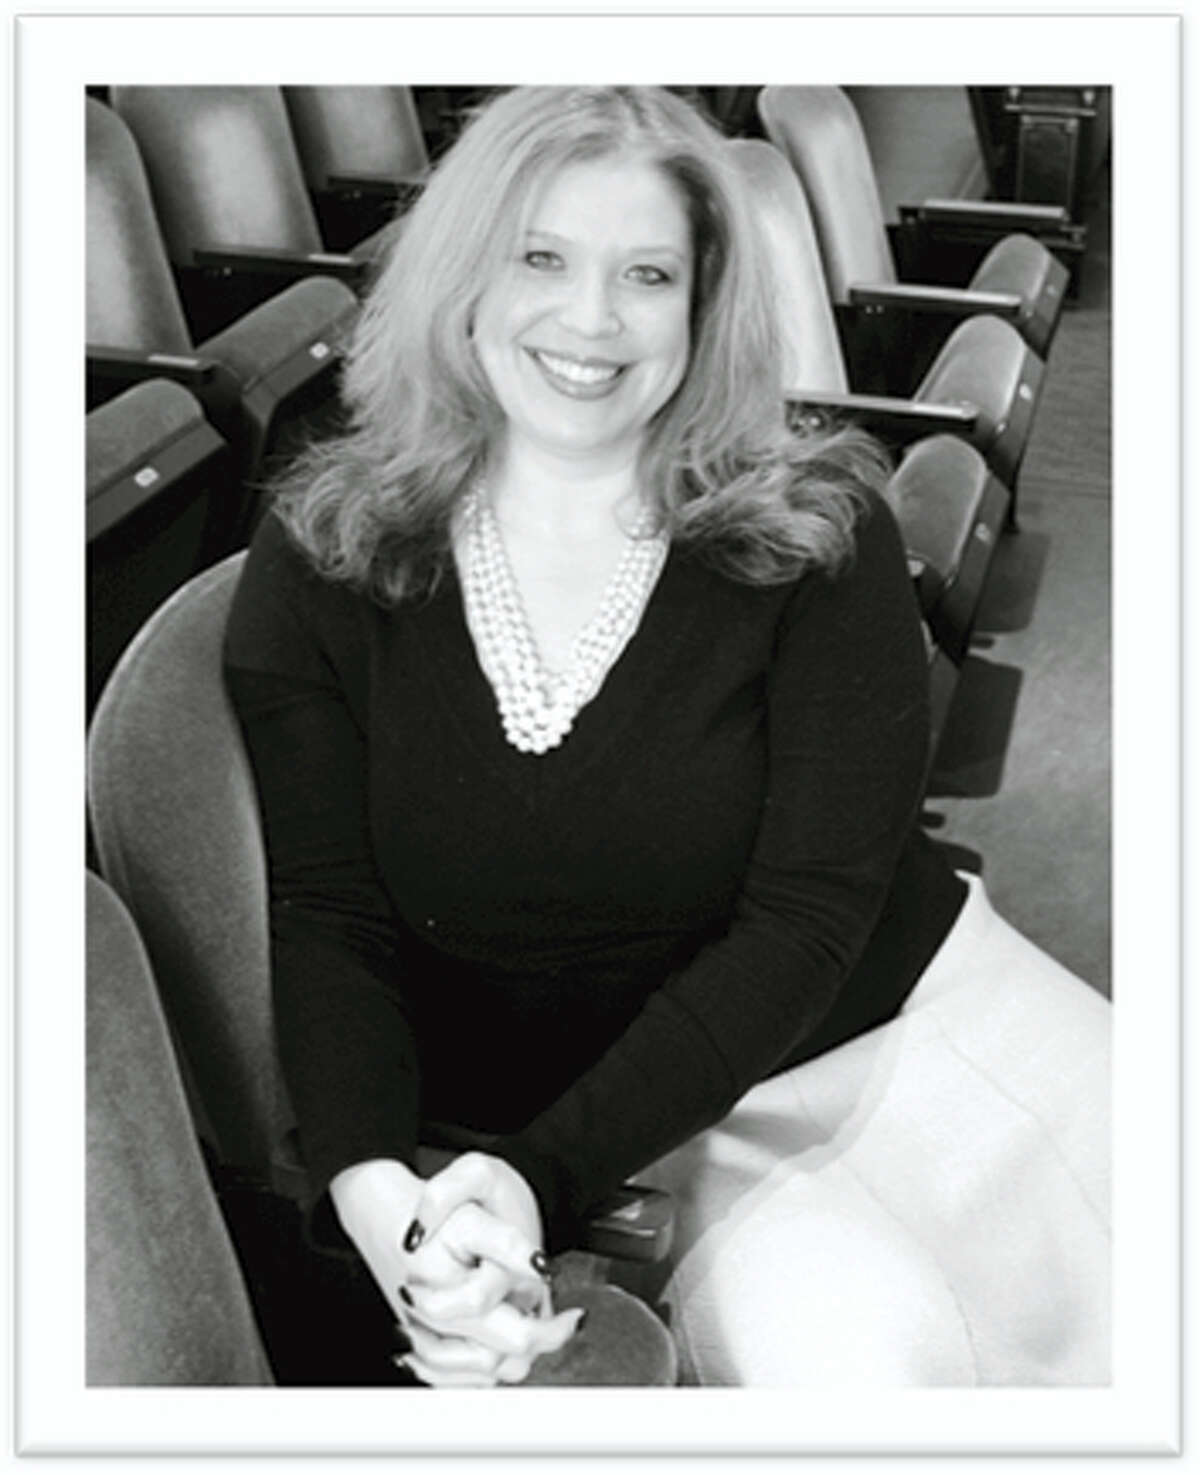 """Contributed photo The Katharine Hepburn Cultural Arts Center in Old Saybrook,, known as the """"the Kate"""", recently announced that Dana Foster joined the organization as Director of Development and External Relations in November. Dana joins an already robust organization that has successfully operated for the past six years. Under the helm of a new Executive Director, Brett Elliott, the Kate is looking to the future by bringing in new shows and new talent, according to a written statement. Prior to joining the Kate, Dana served as the Director of External Relations and Governance with Achievement First, a nonprofit dedicated to closing the achievement gap for inner city youth in the NY, CT and RI region. Dana's background includes experience in for profit and not-for-profit business development and marketing, as well as general corporate law focusing on nonprofits and closely held companies. She is a former board member and current education committee member with the Hartford Stage Company. She also served on the Kate's gala committee for the past two years and has served on various community and professional boards during her career. Dana holds a BA from Colby College, a JD from Boston College, a MBA from the University of Connecticut, and a MA focusing on organizational psychology from the University of Hartford. Her office will be based in Old Saybrook."""